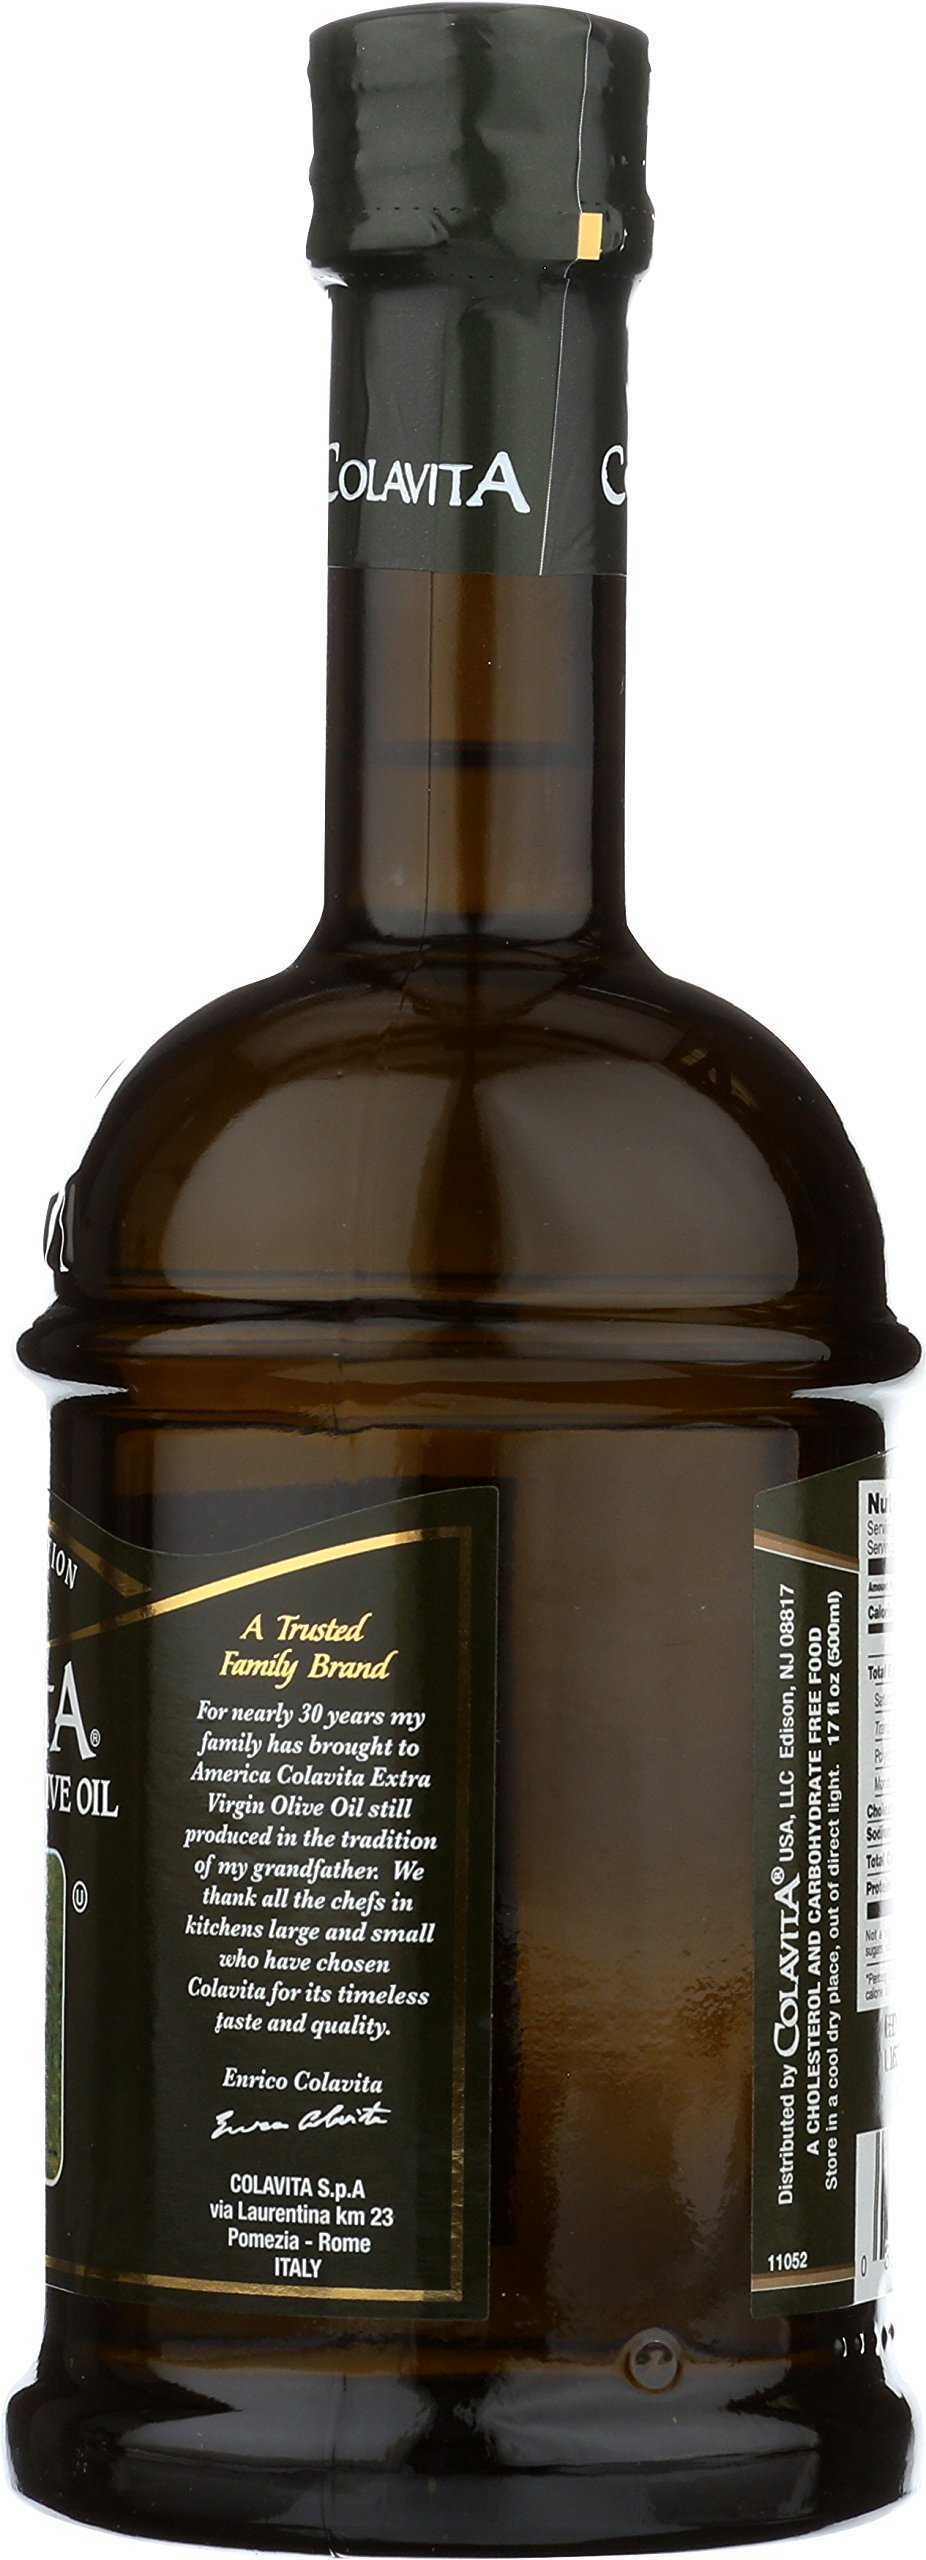 Colavita Extra Virgin Olive Oil Special, 17 Ounce (Pack of 2) by Colavita (Image #7)